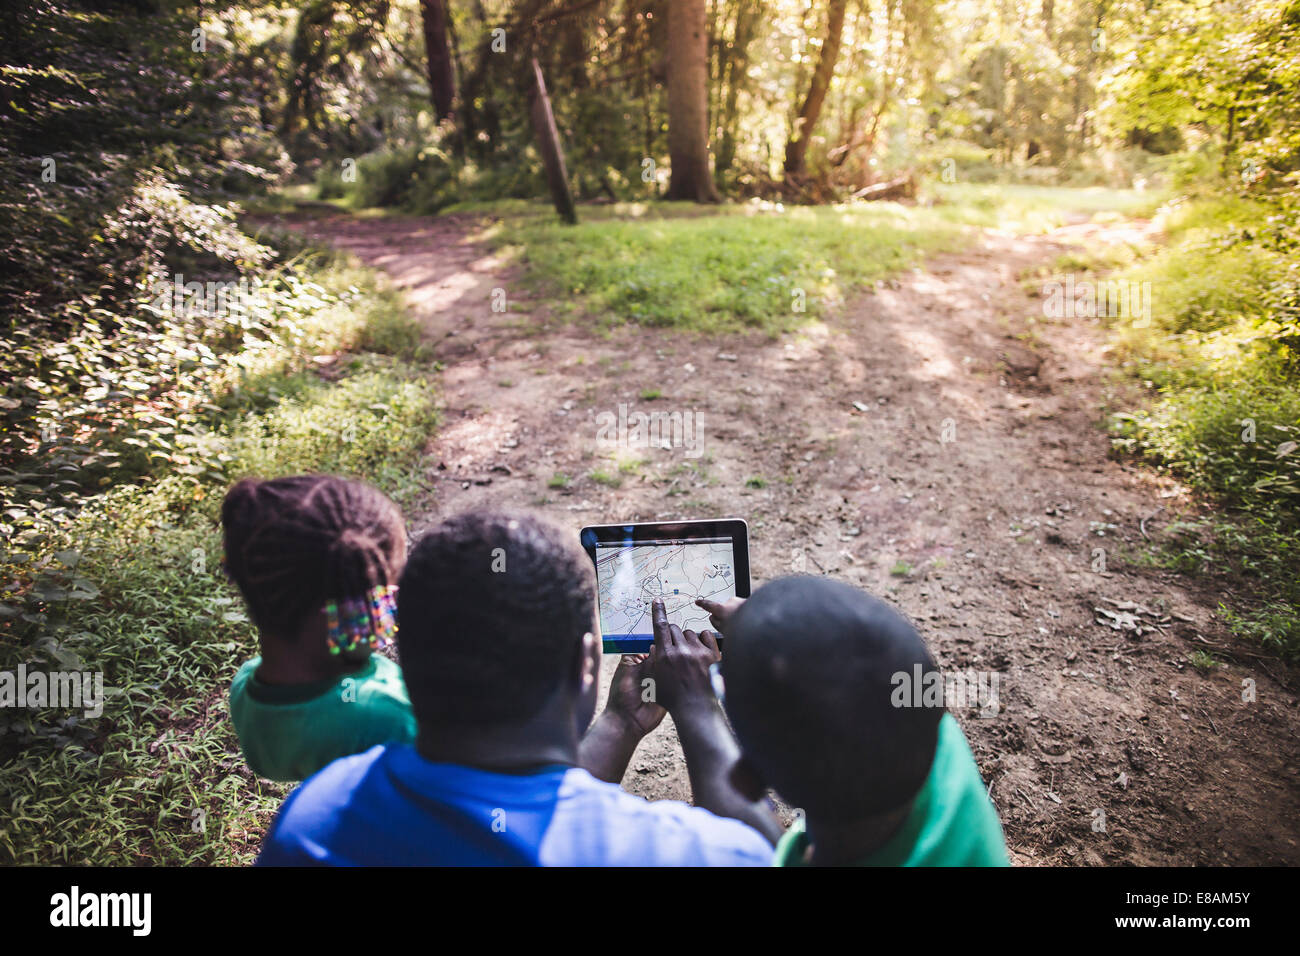 Father with daughter and son navigating with digital tablet in forest eco camp - Stock Image